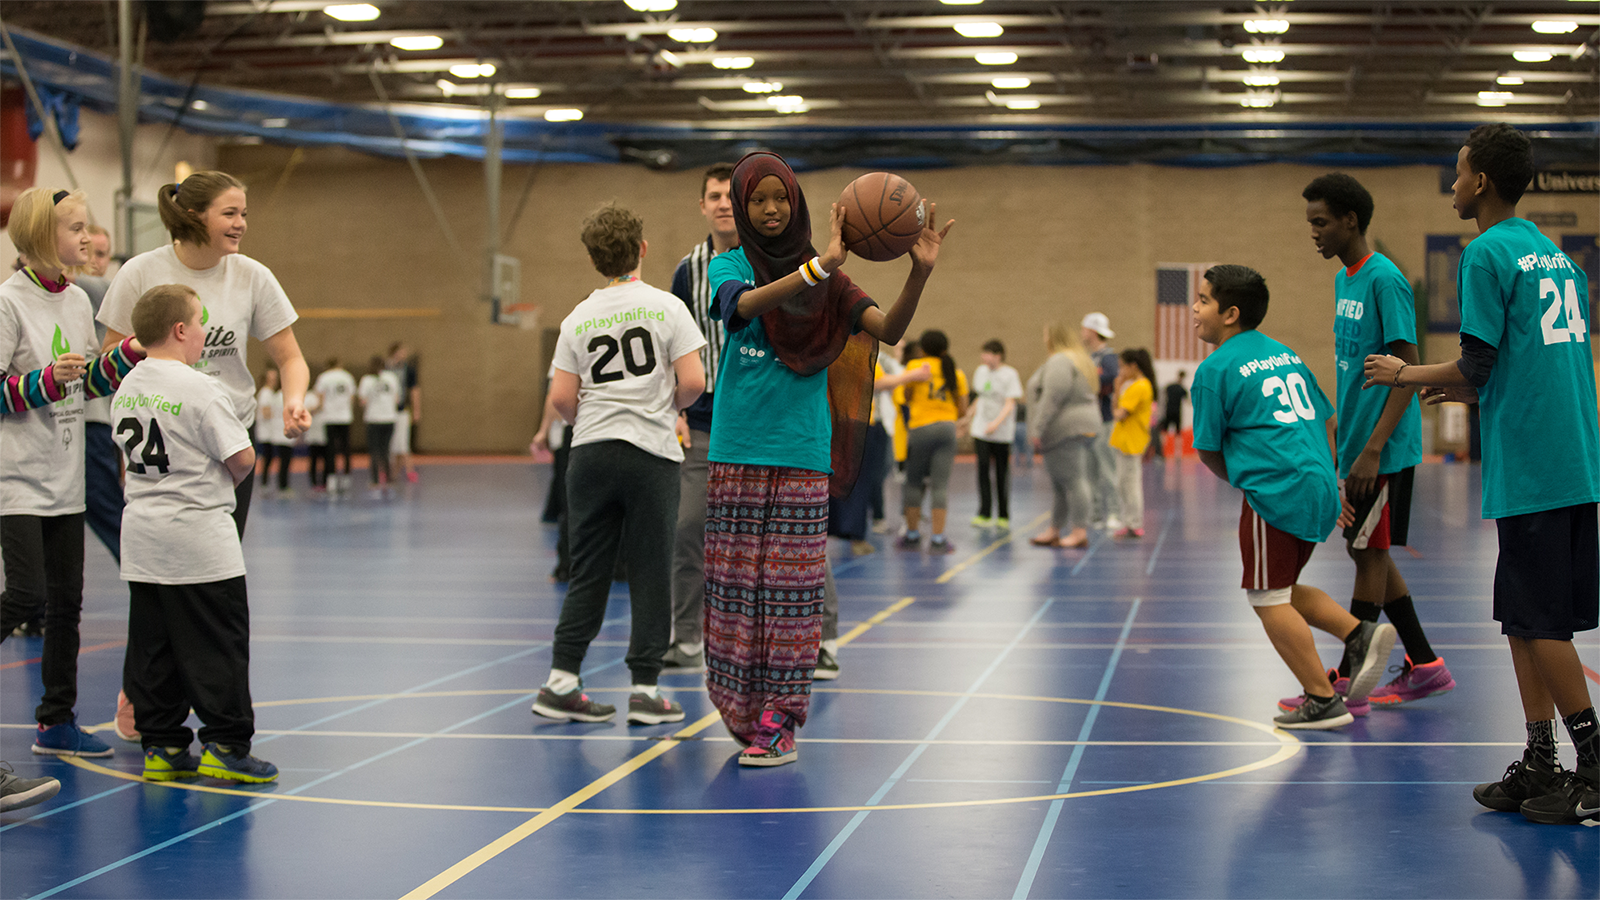 A Special Olympics Minnesota Unified basketball player passes the ball off to someone on her team while another team looks on